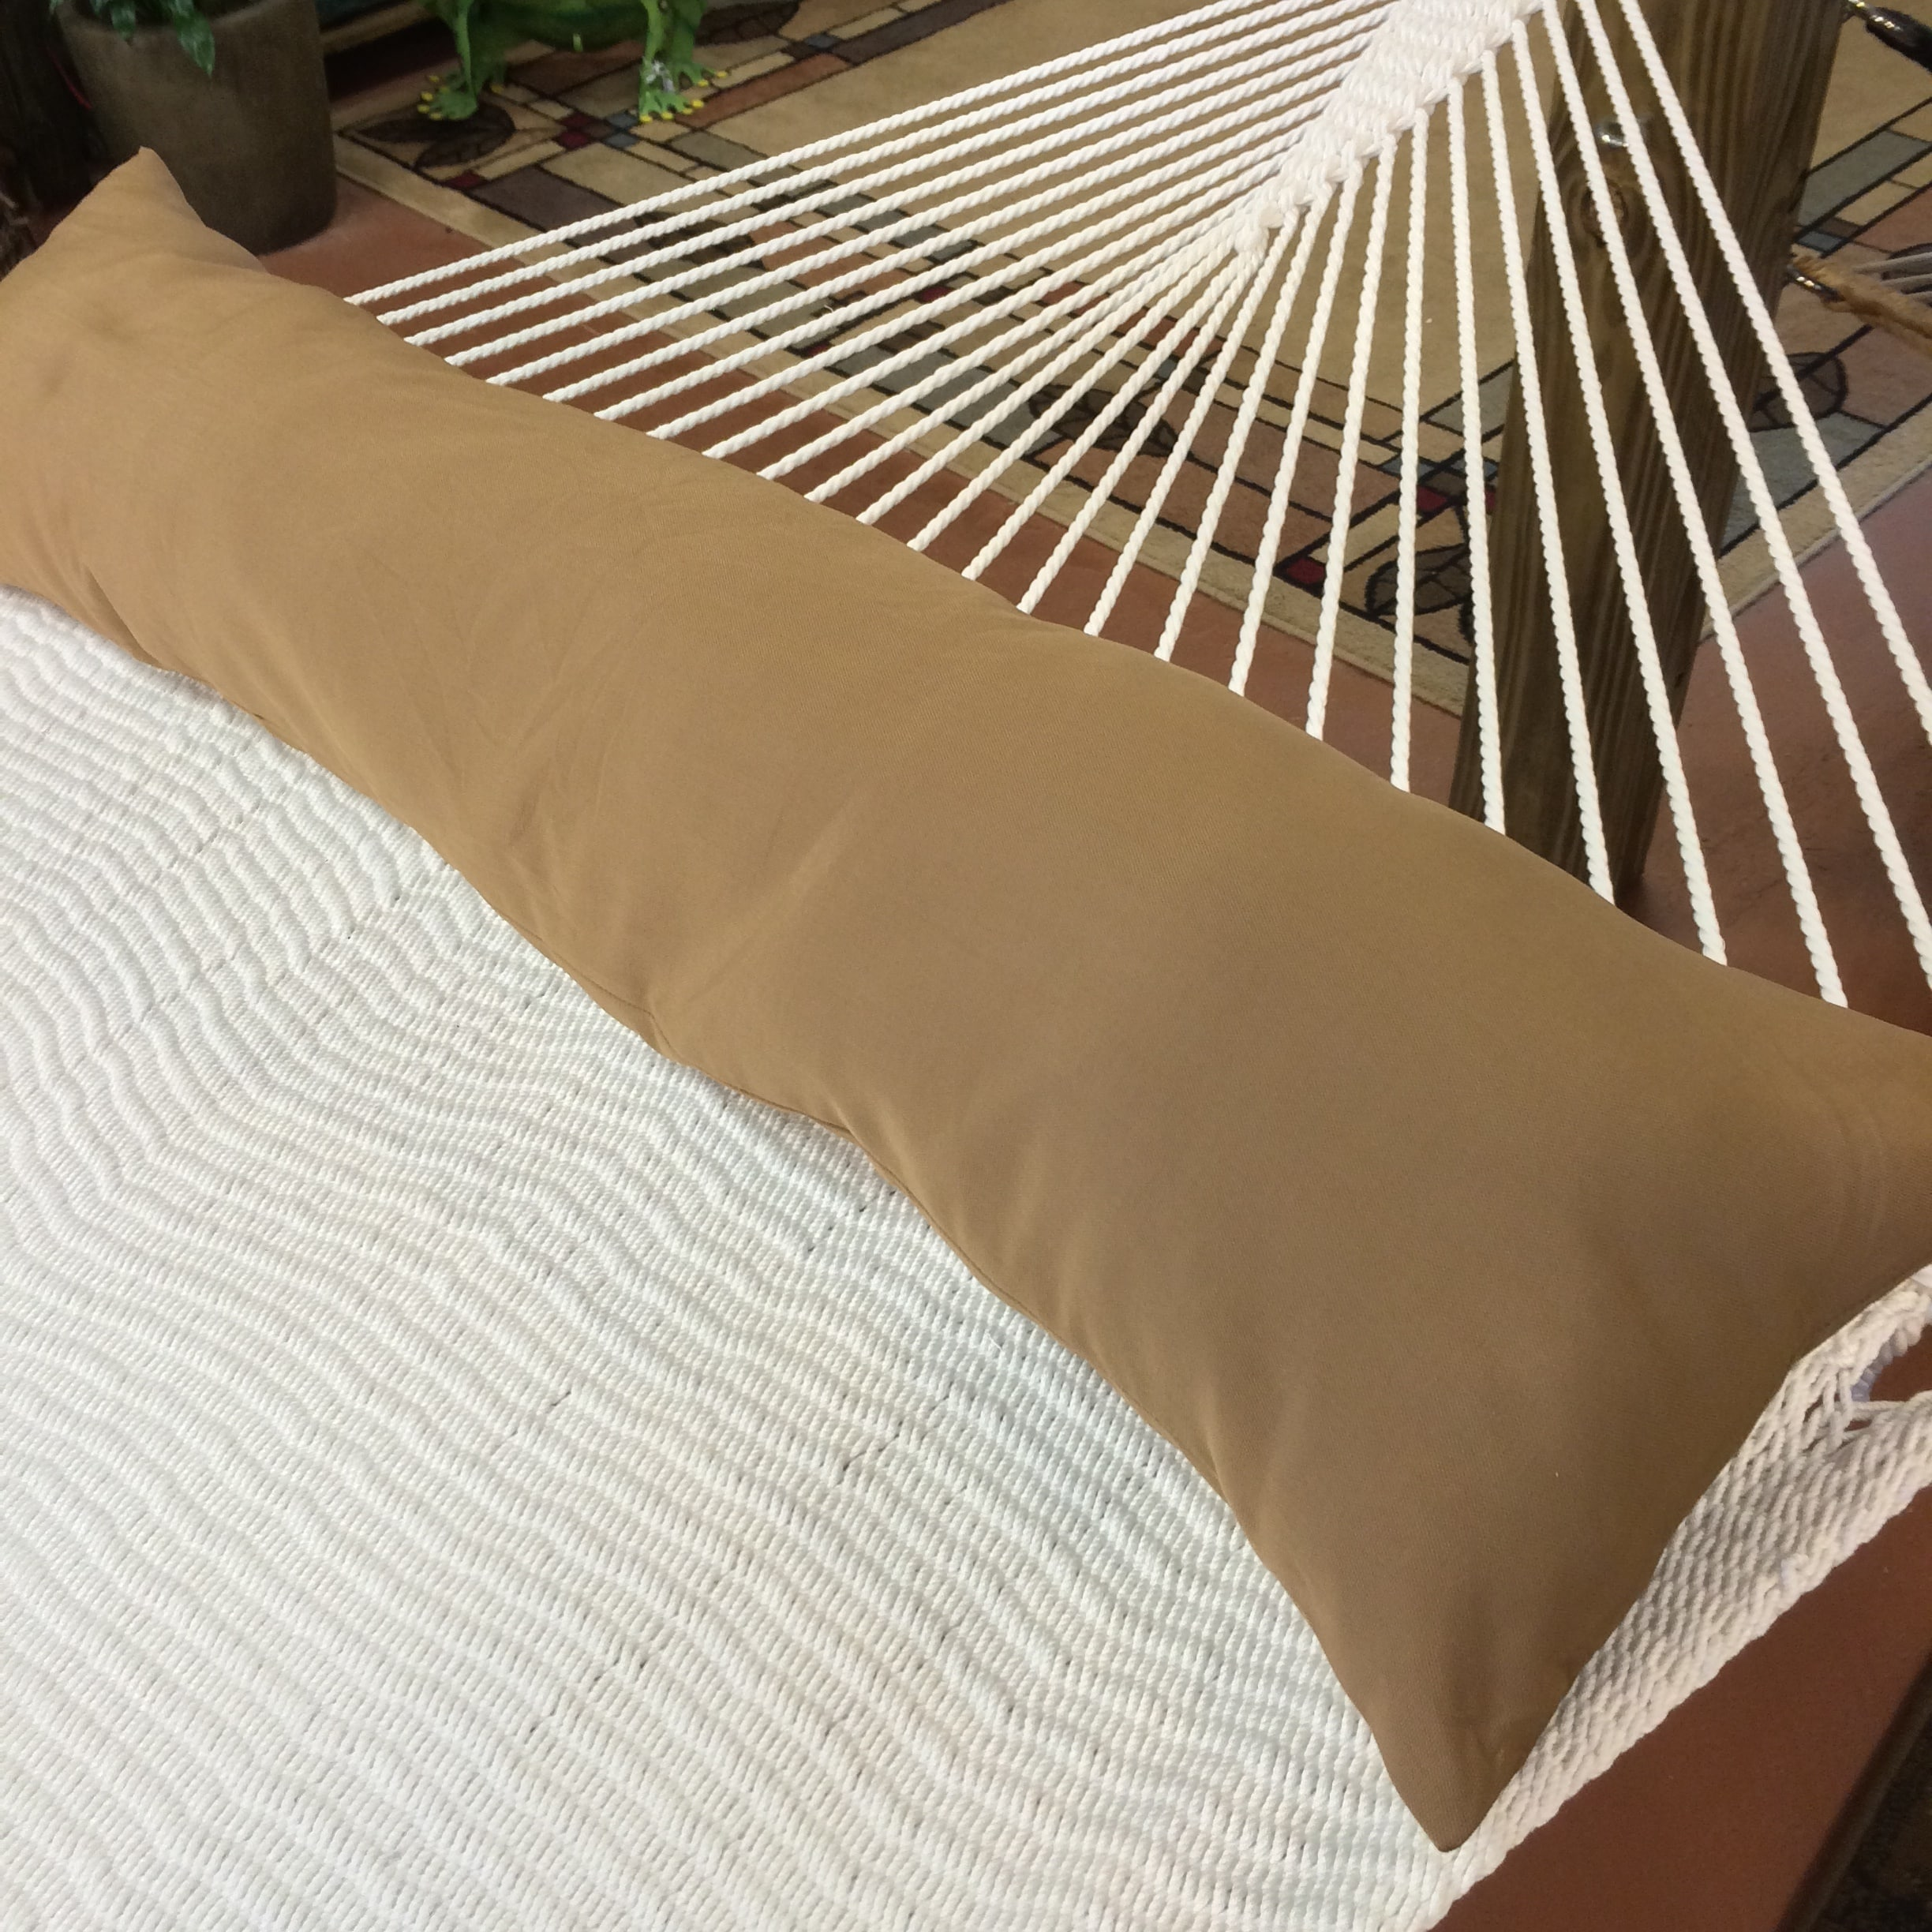 hammock store buttons window my pillows display pin